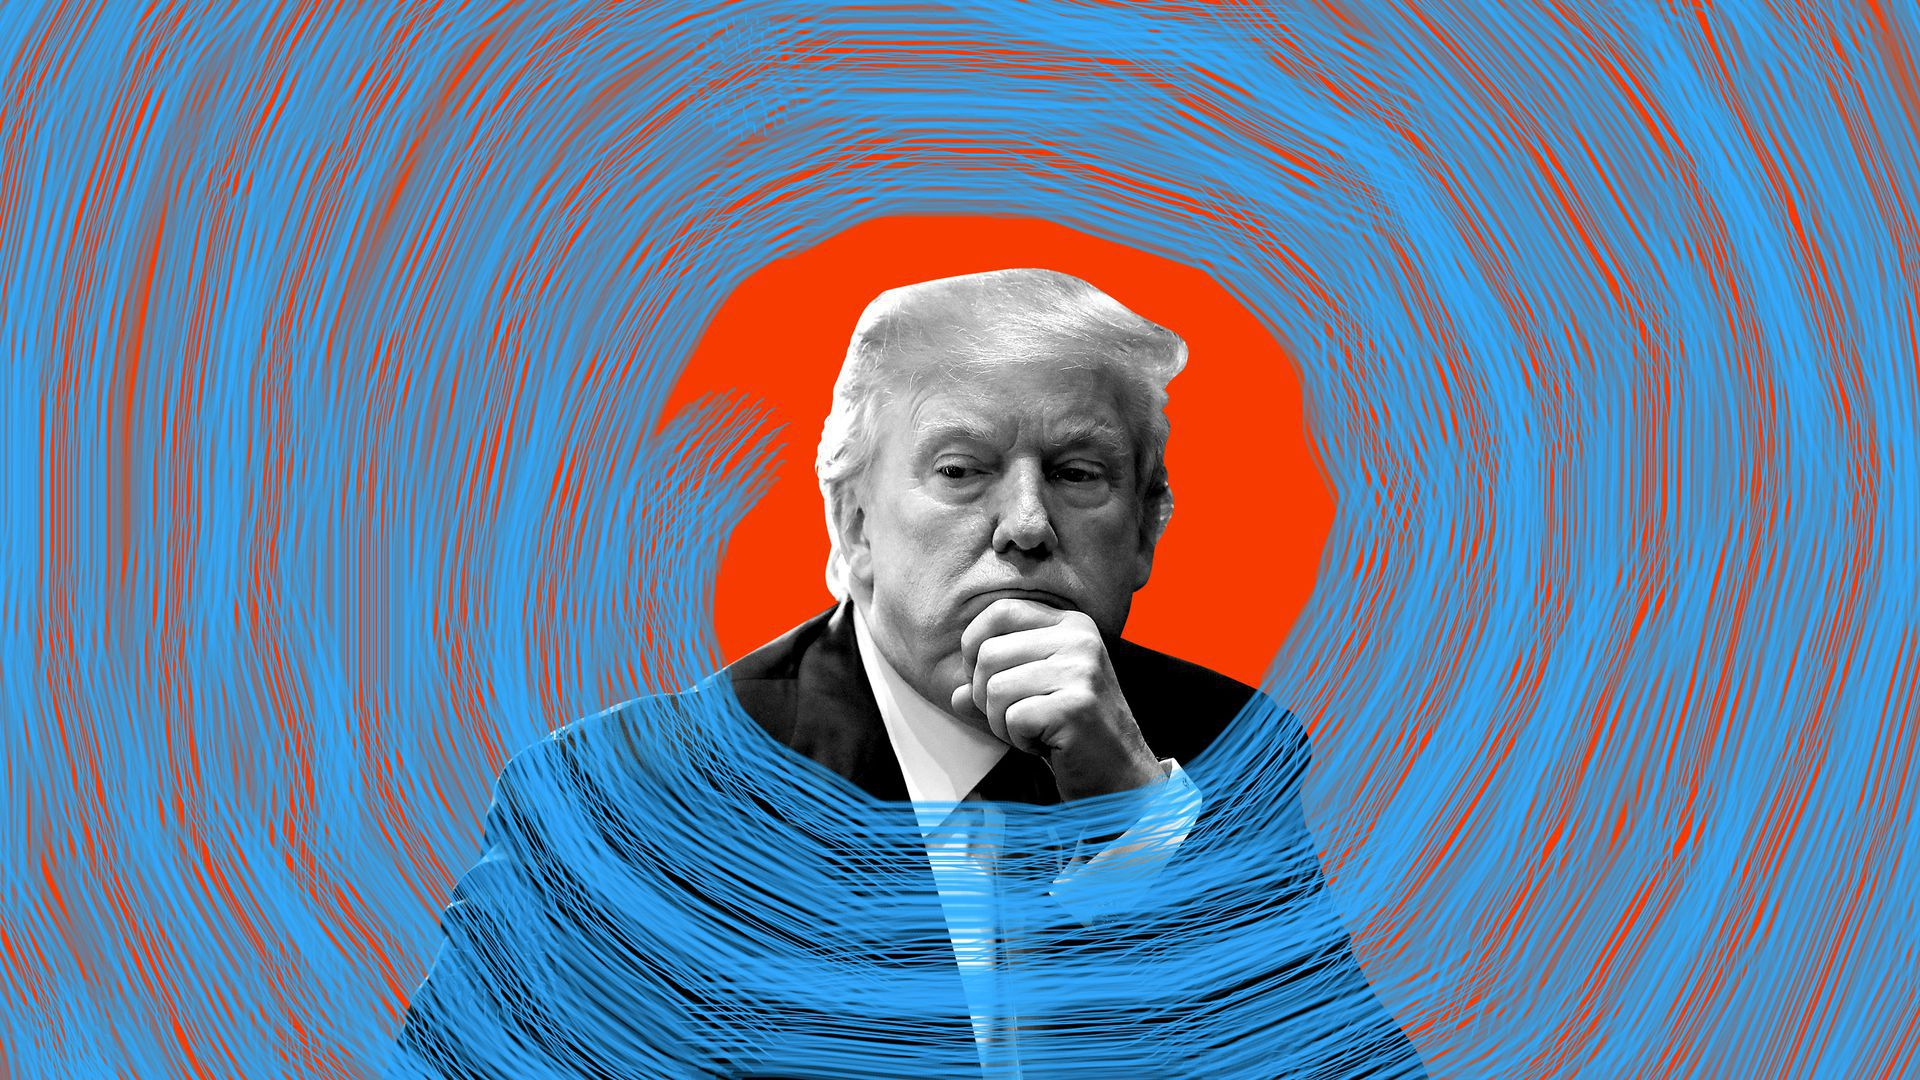 President Trump and a swirling vortex